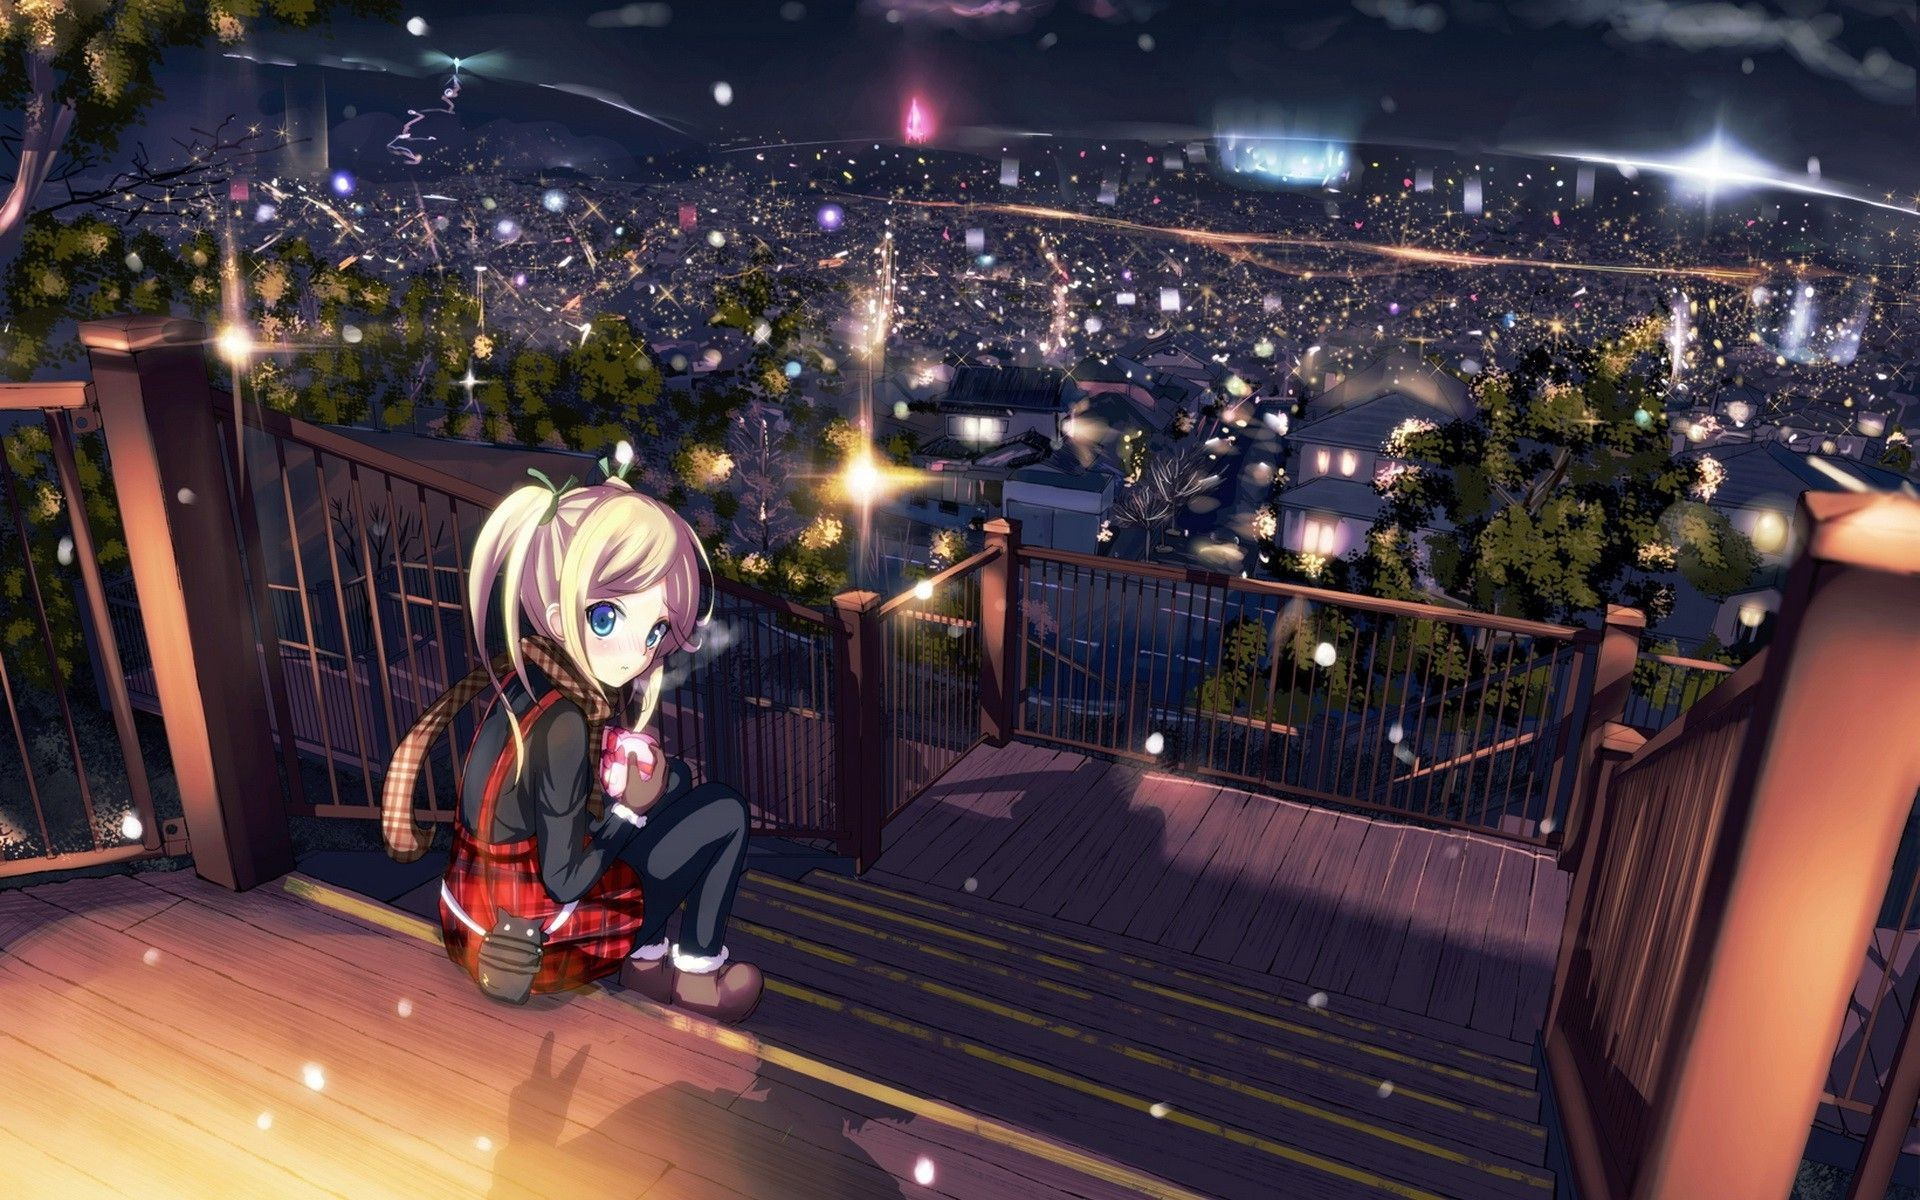 Lonely Girl Hd Wallpapers For Mobile Anime Girls City Night View Lights Wallpaper Anime